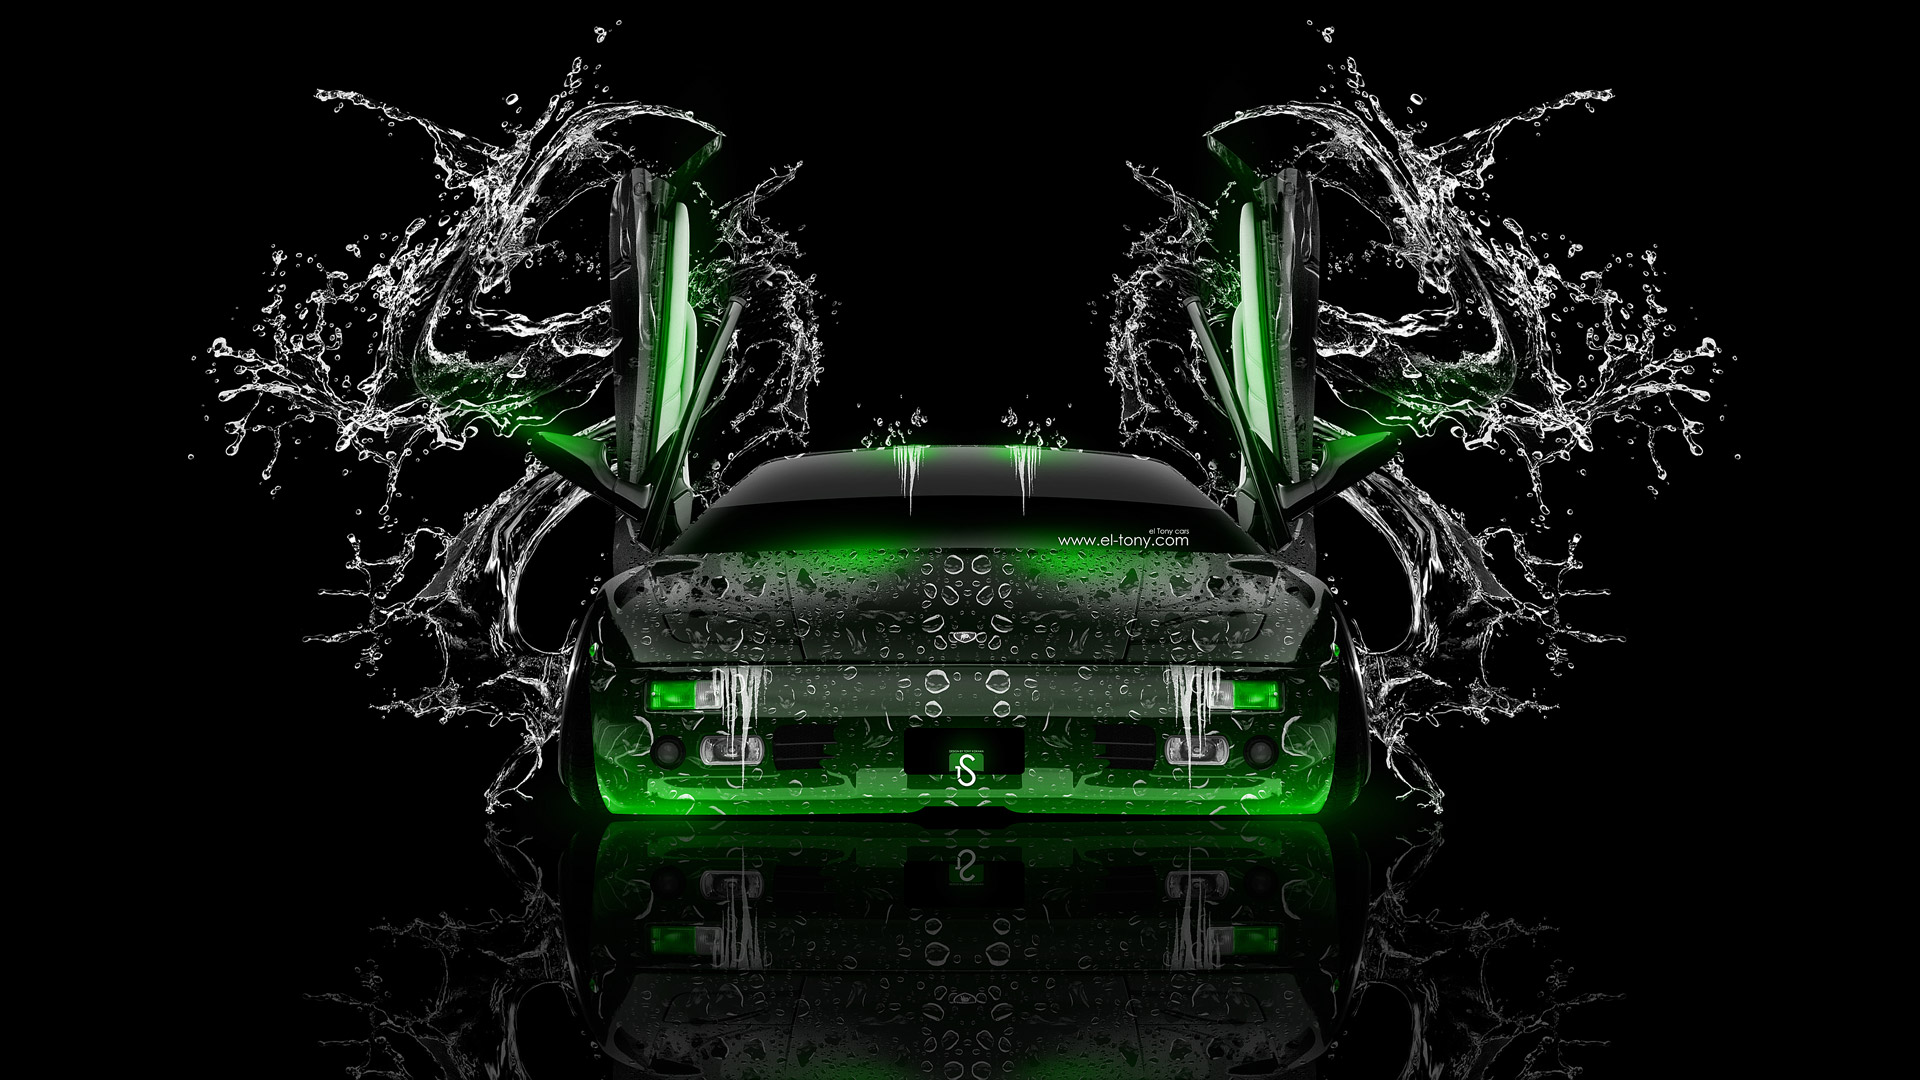 Lamborghini Diablo Open Doors Front Water Car Green Neon Design By Tony Kokhan   El Tony on mclaren p1 blue fire